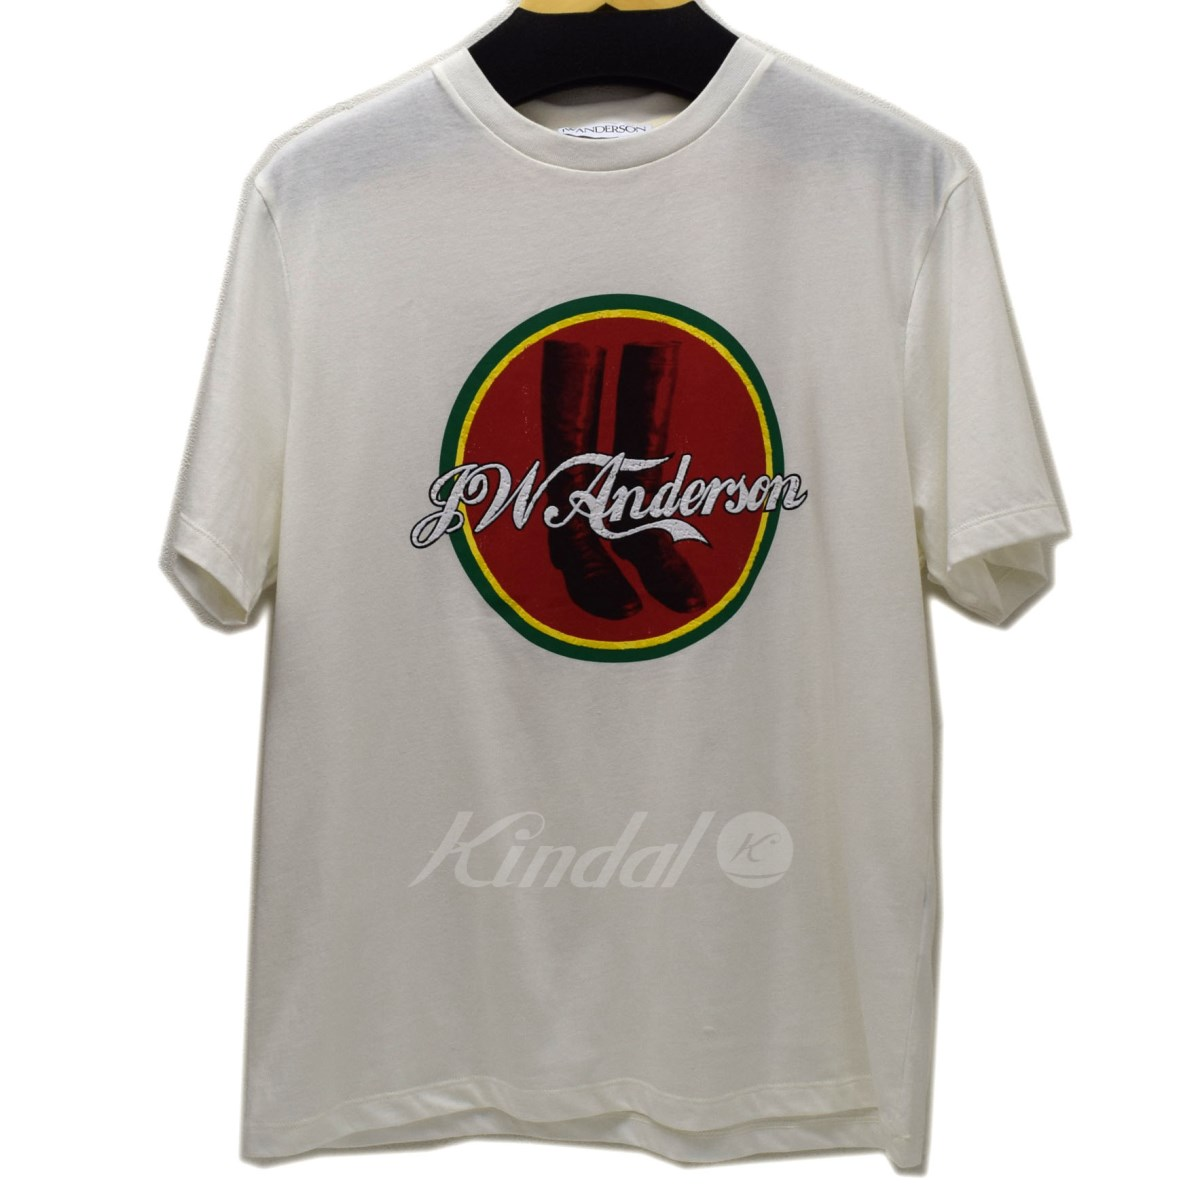 finest selection 4760f 43329 J. W. Anderson boots & logo T white size: M (Jonathan William Anderson)